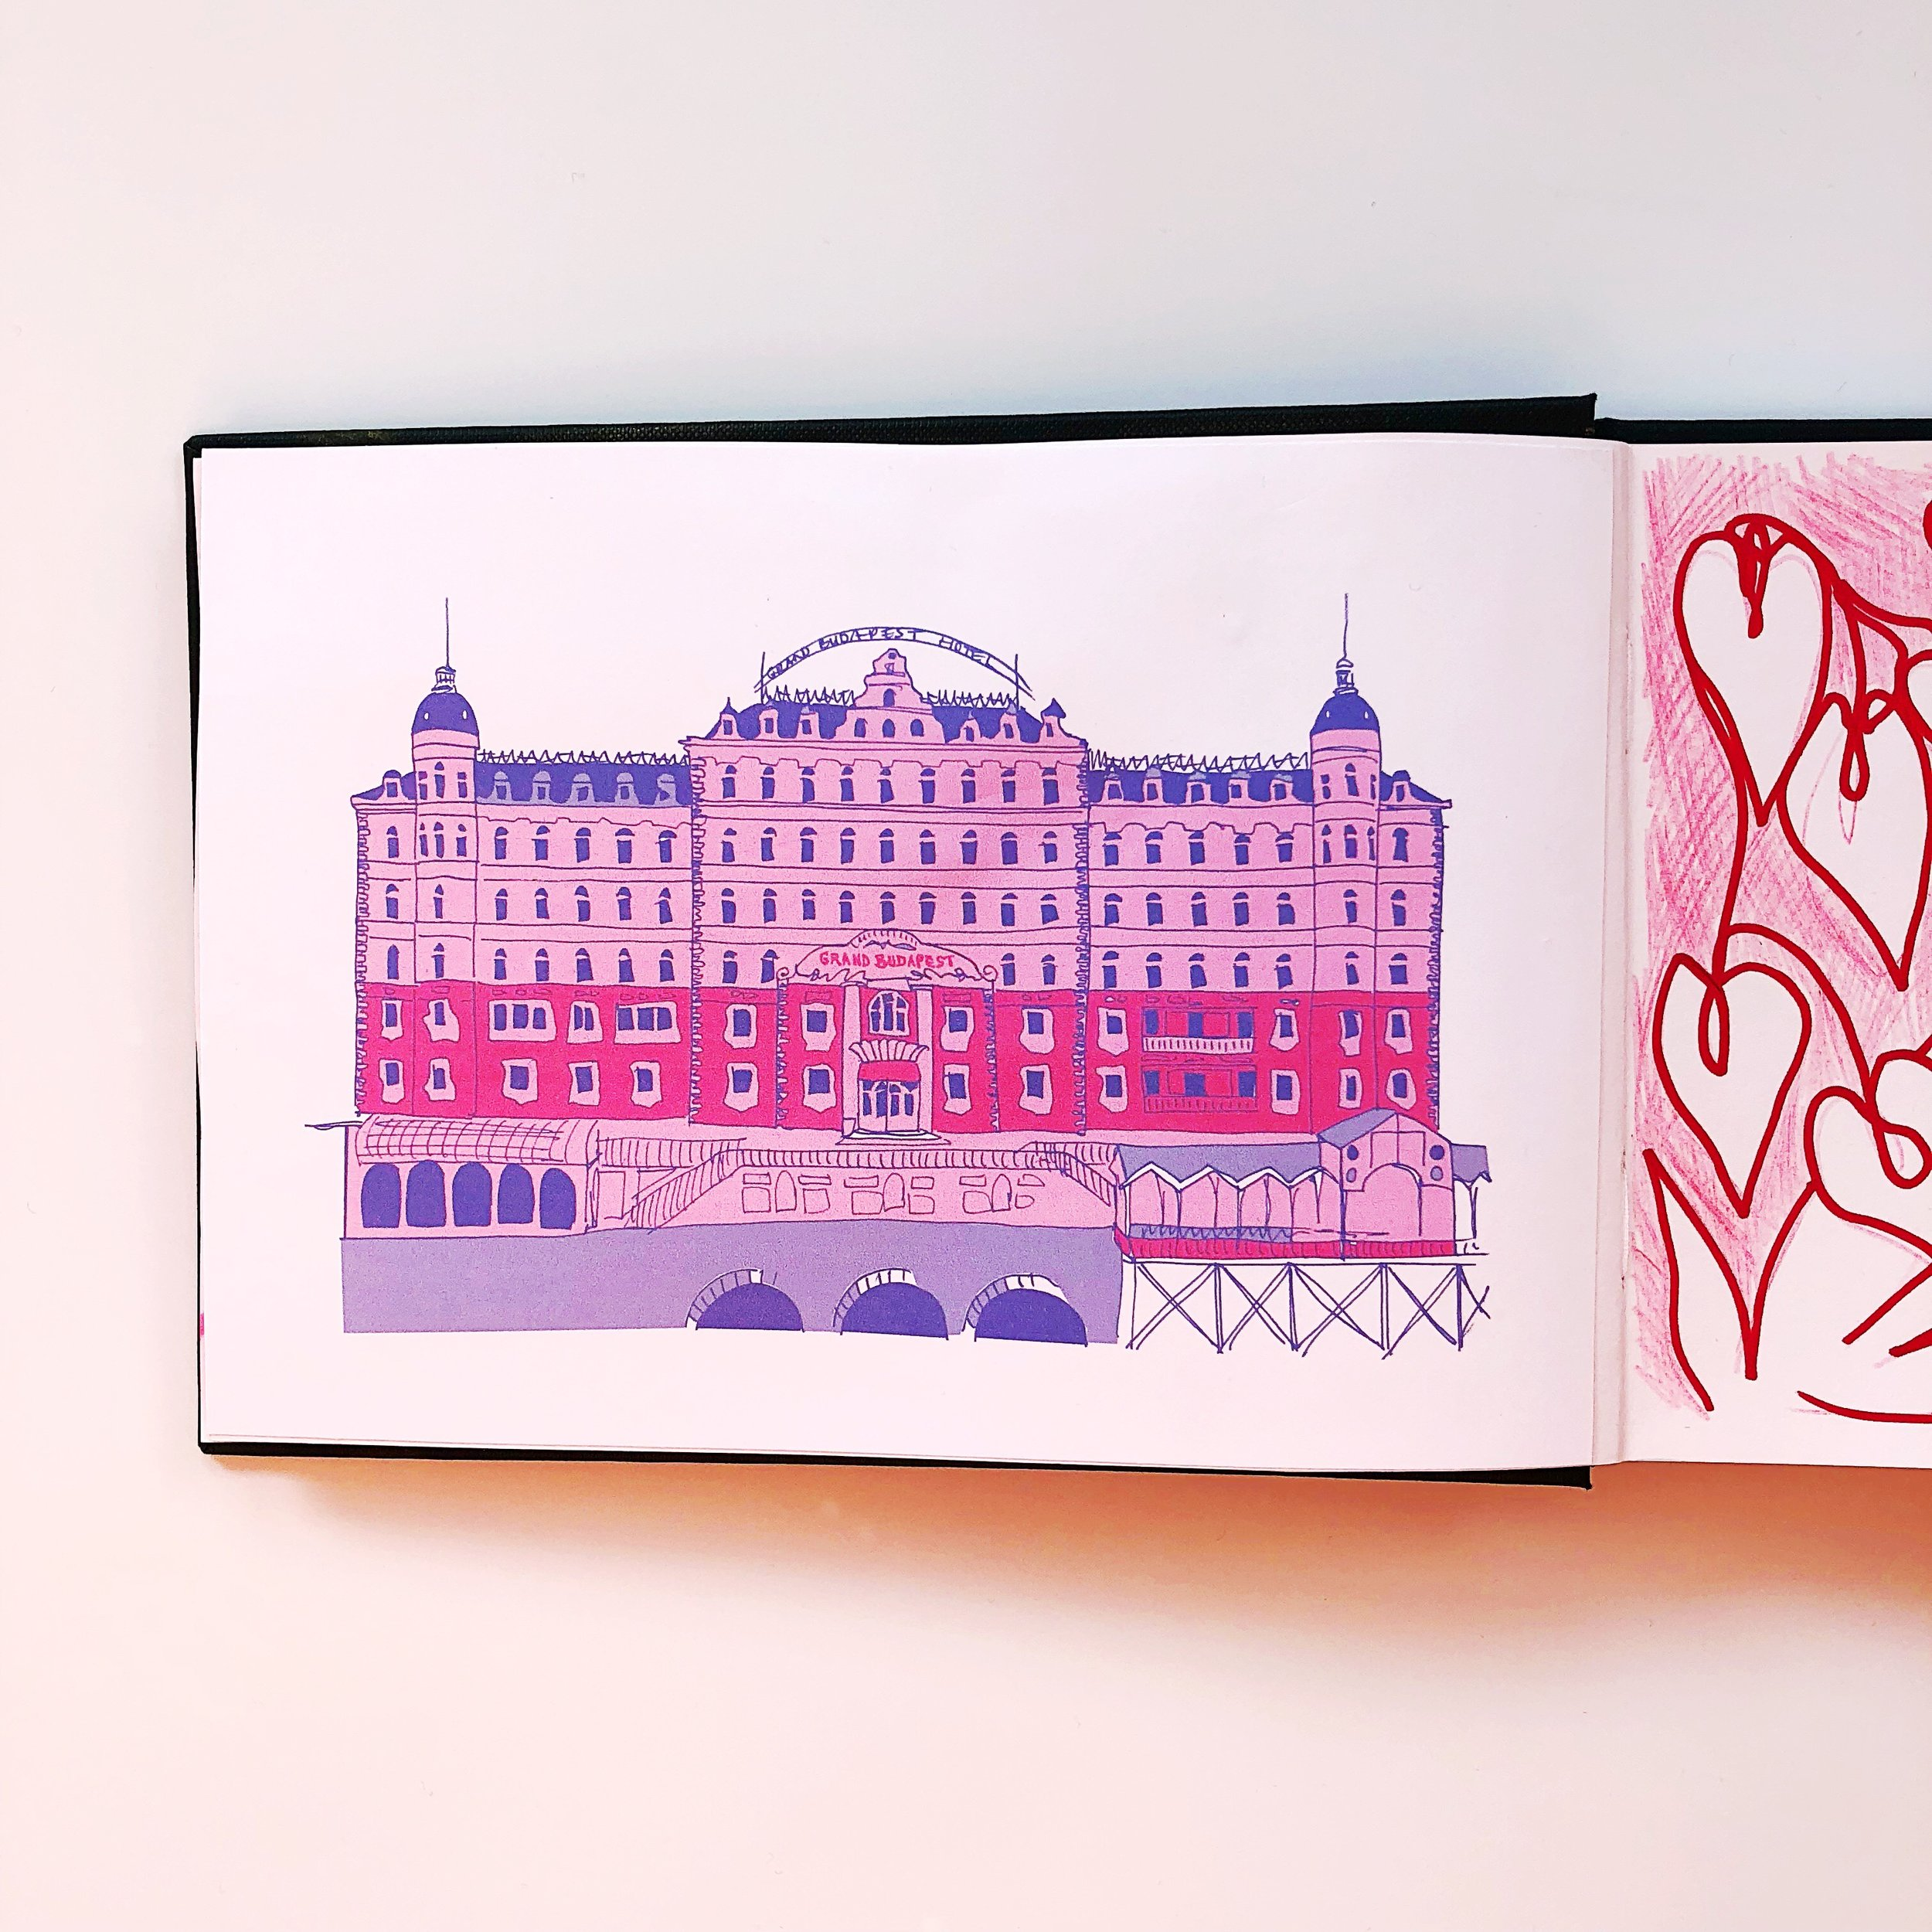 Week 2, day 2 - a scene from a film or TV show using only 2 colours - The Grand Budapest Hotel